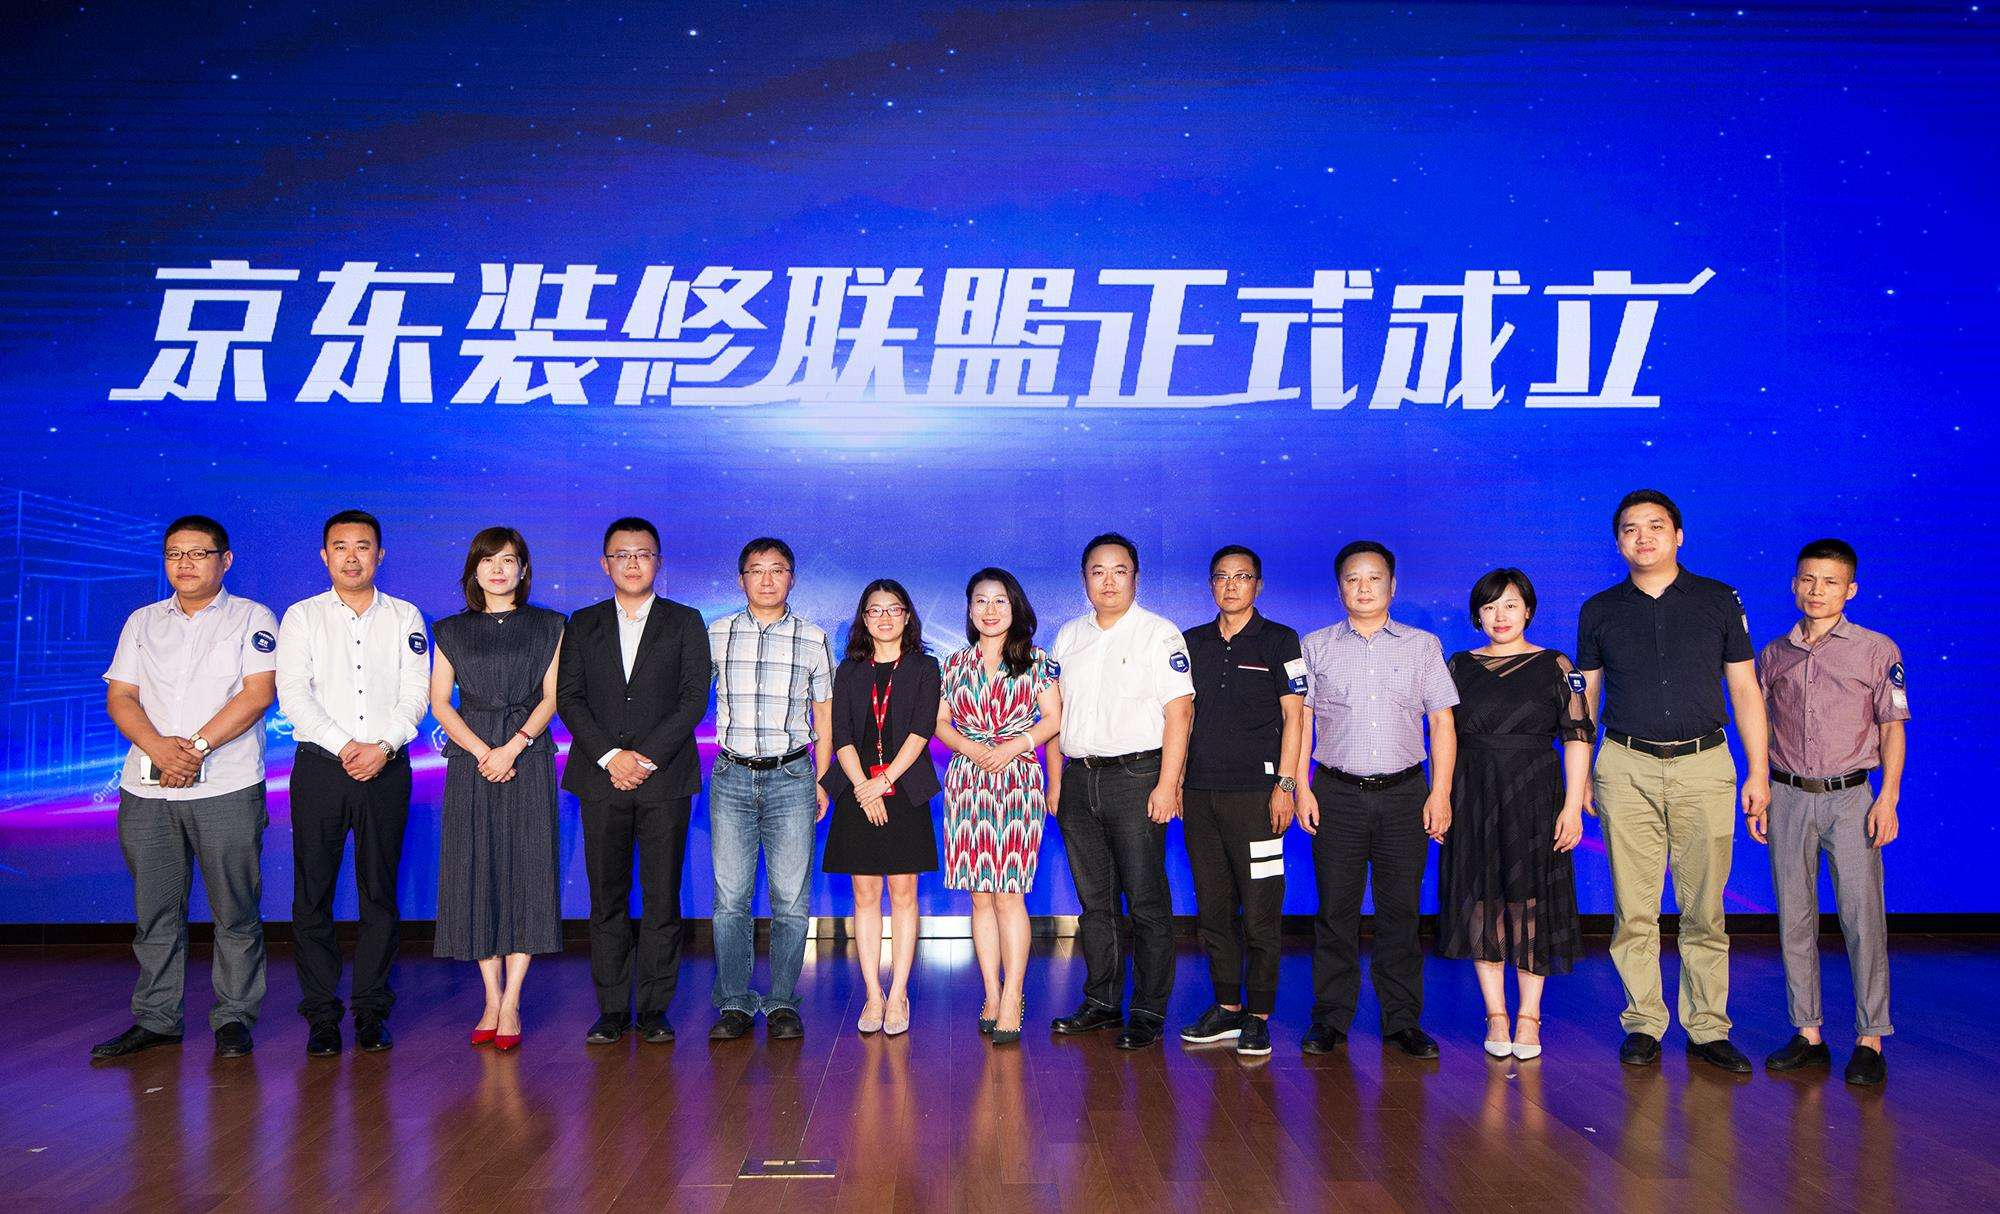 Jingdong,2nd Anniversary Celebration, Jingdong Home Founded Jingdong Decoration Alliance with 11 Chinese Home Decoration Enterprises